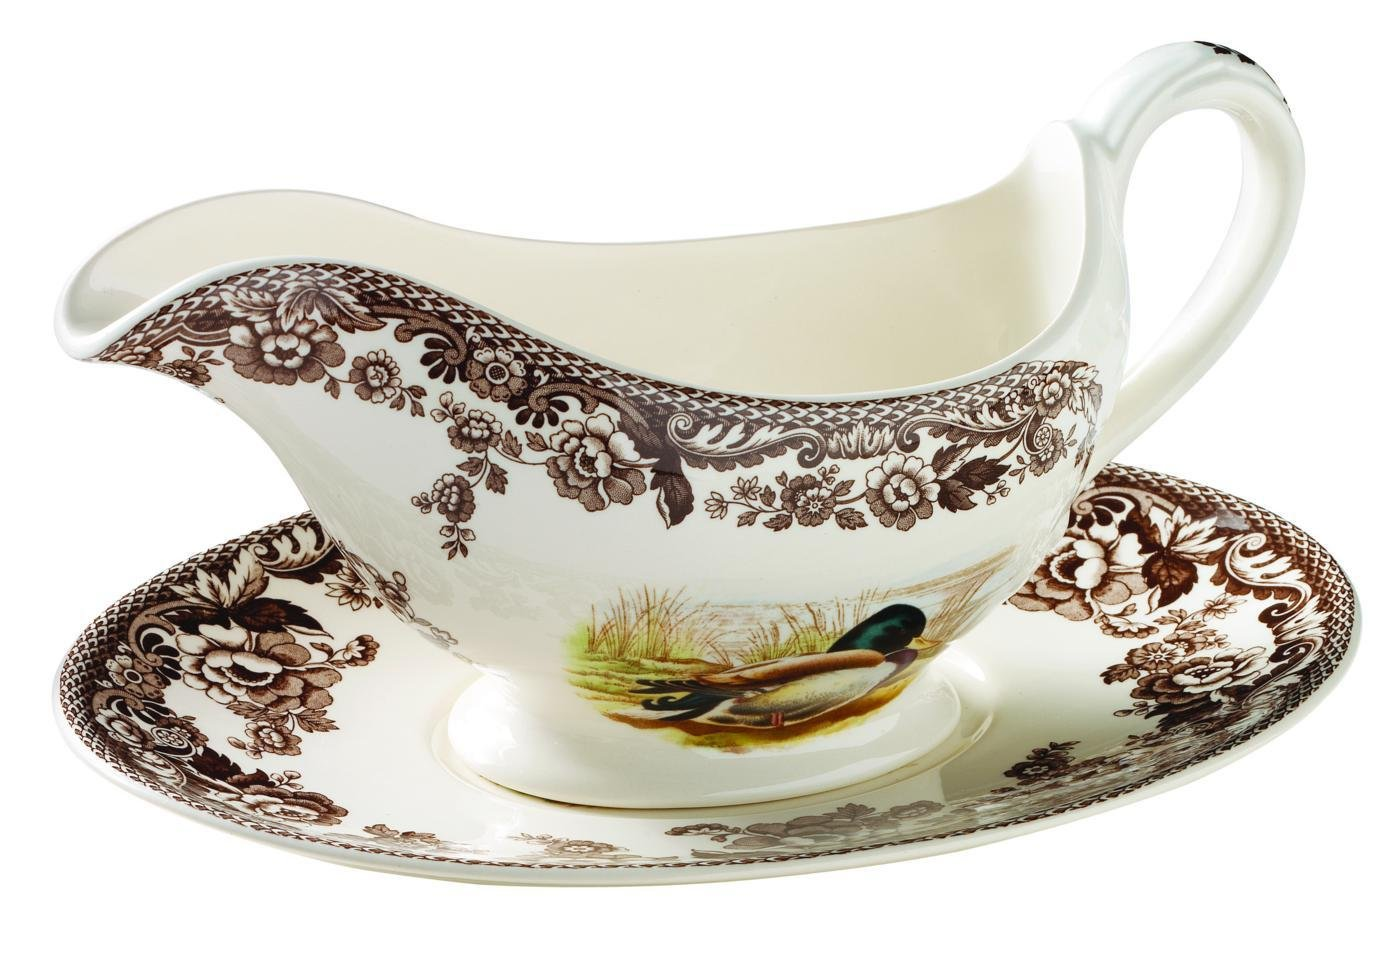 Spode Woodland Mallard, Snipe and Rabbit Sauceboat and Stand